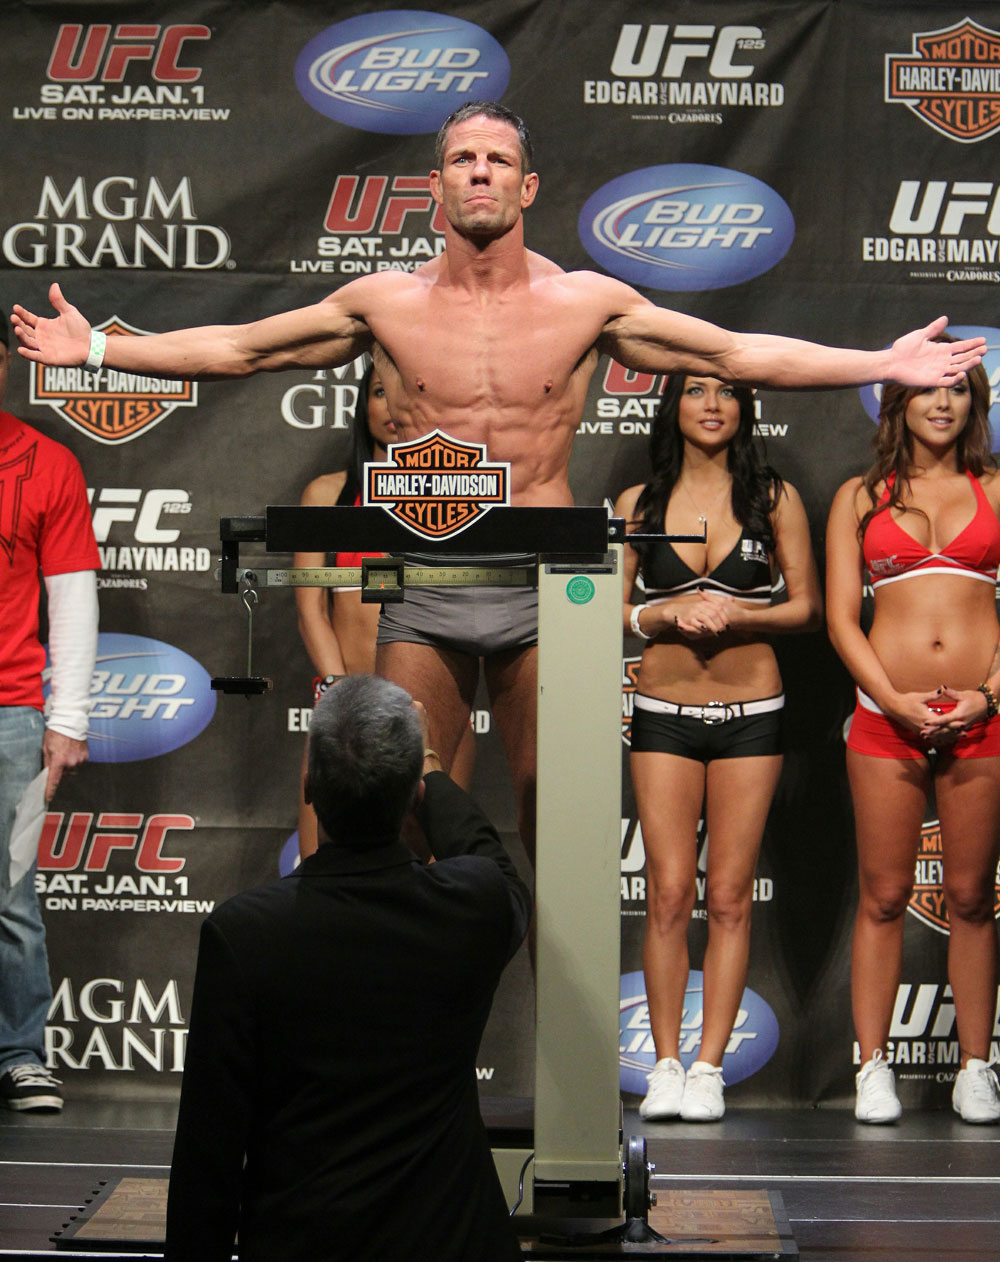 Marcus Davis at the UFC 125 Weigh-in.